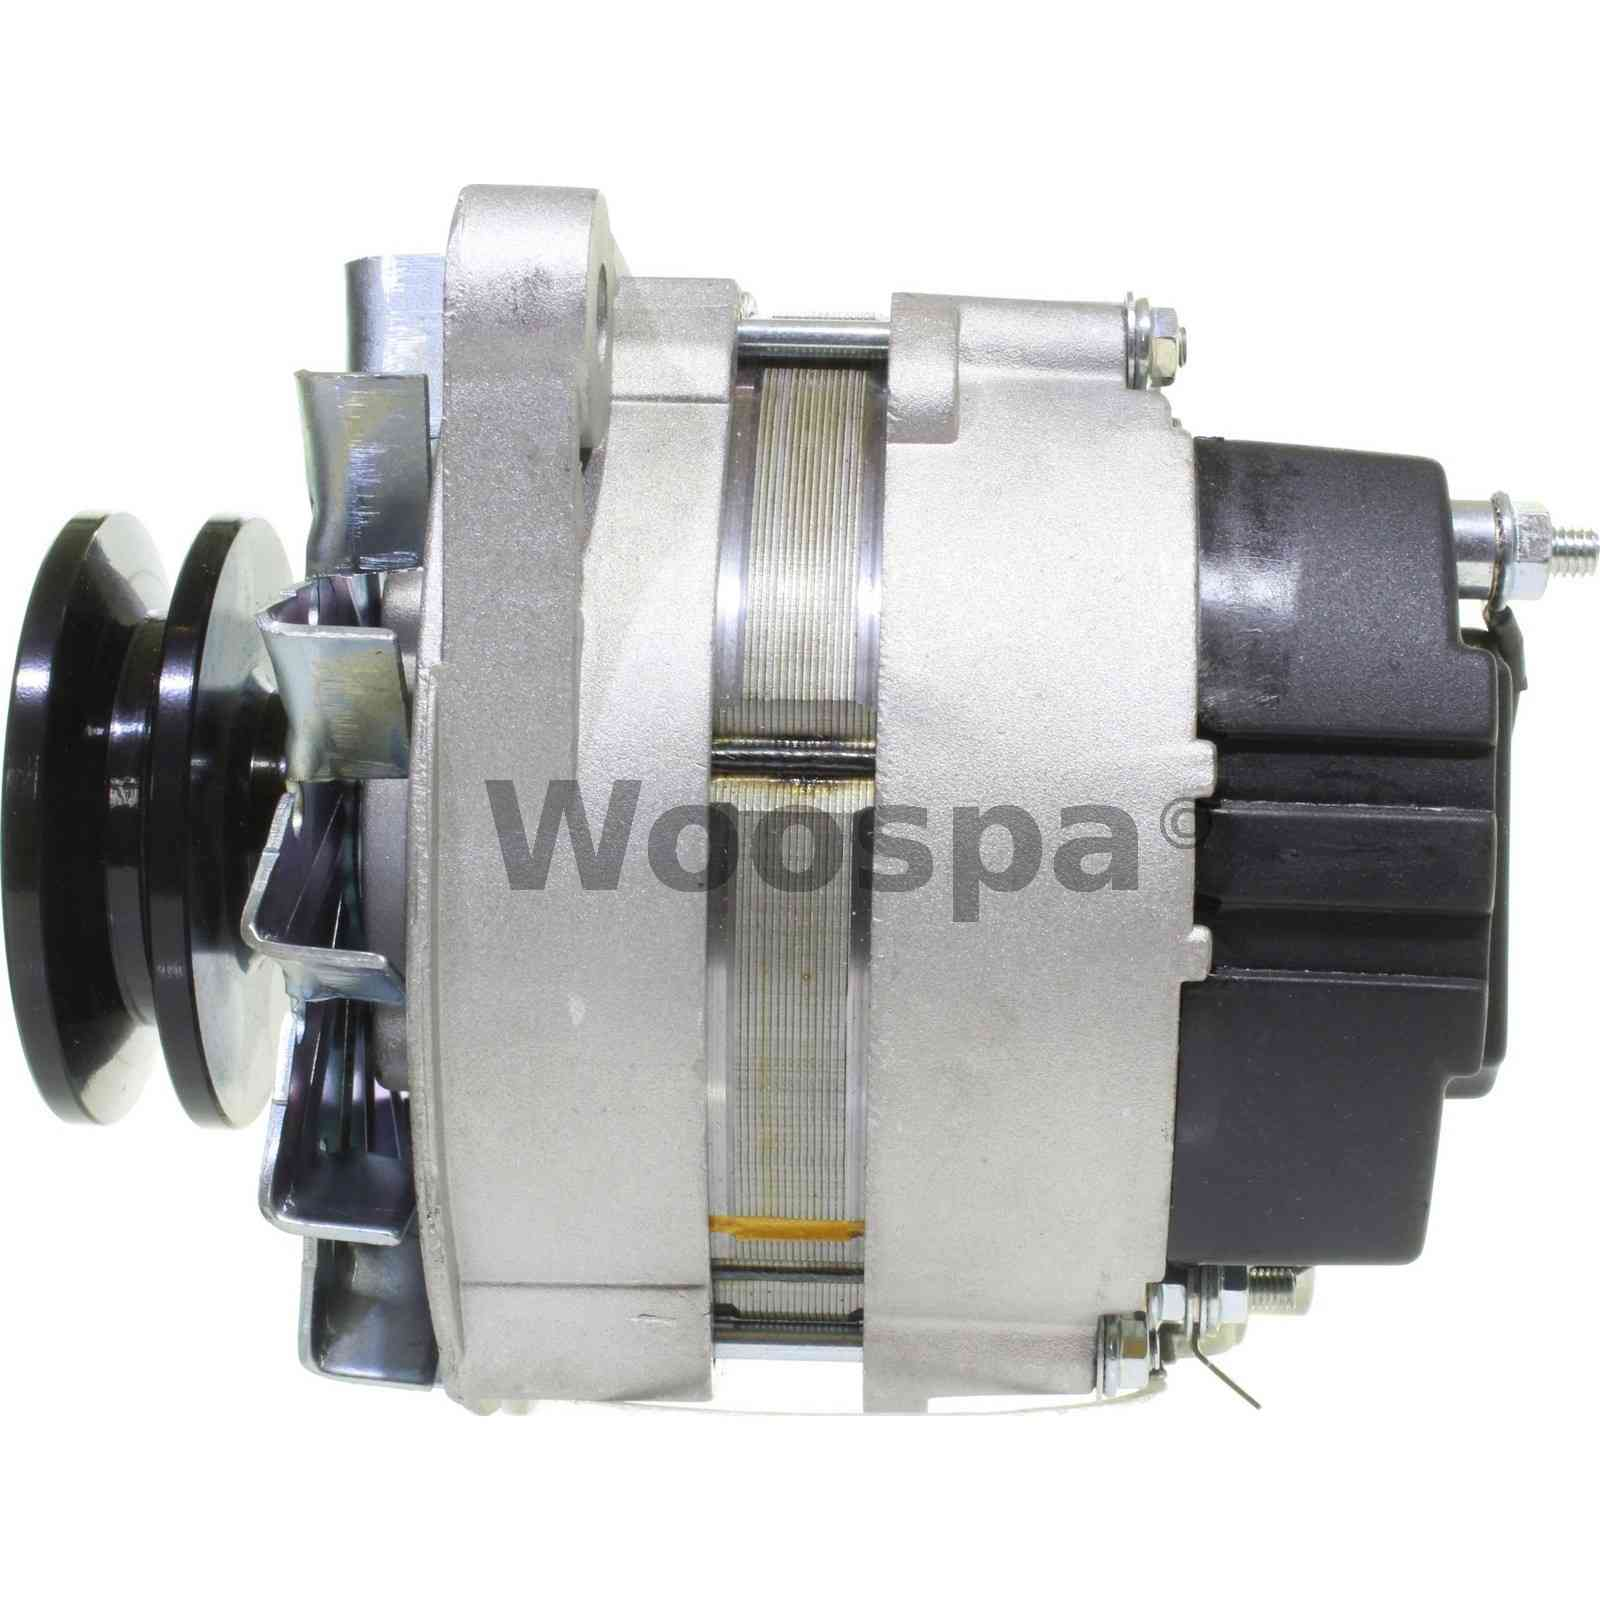 LICHTMASCHINE 35A IVECO M 115 17 135 145 159 165 24 175 P PA 190 30 300 330 36